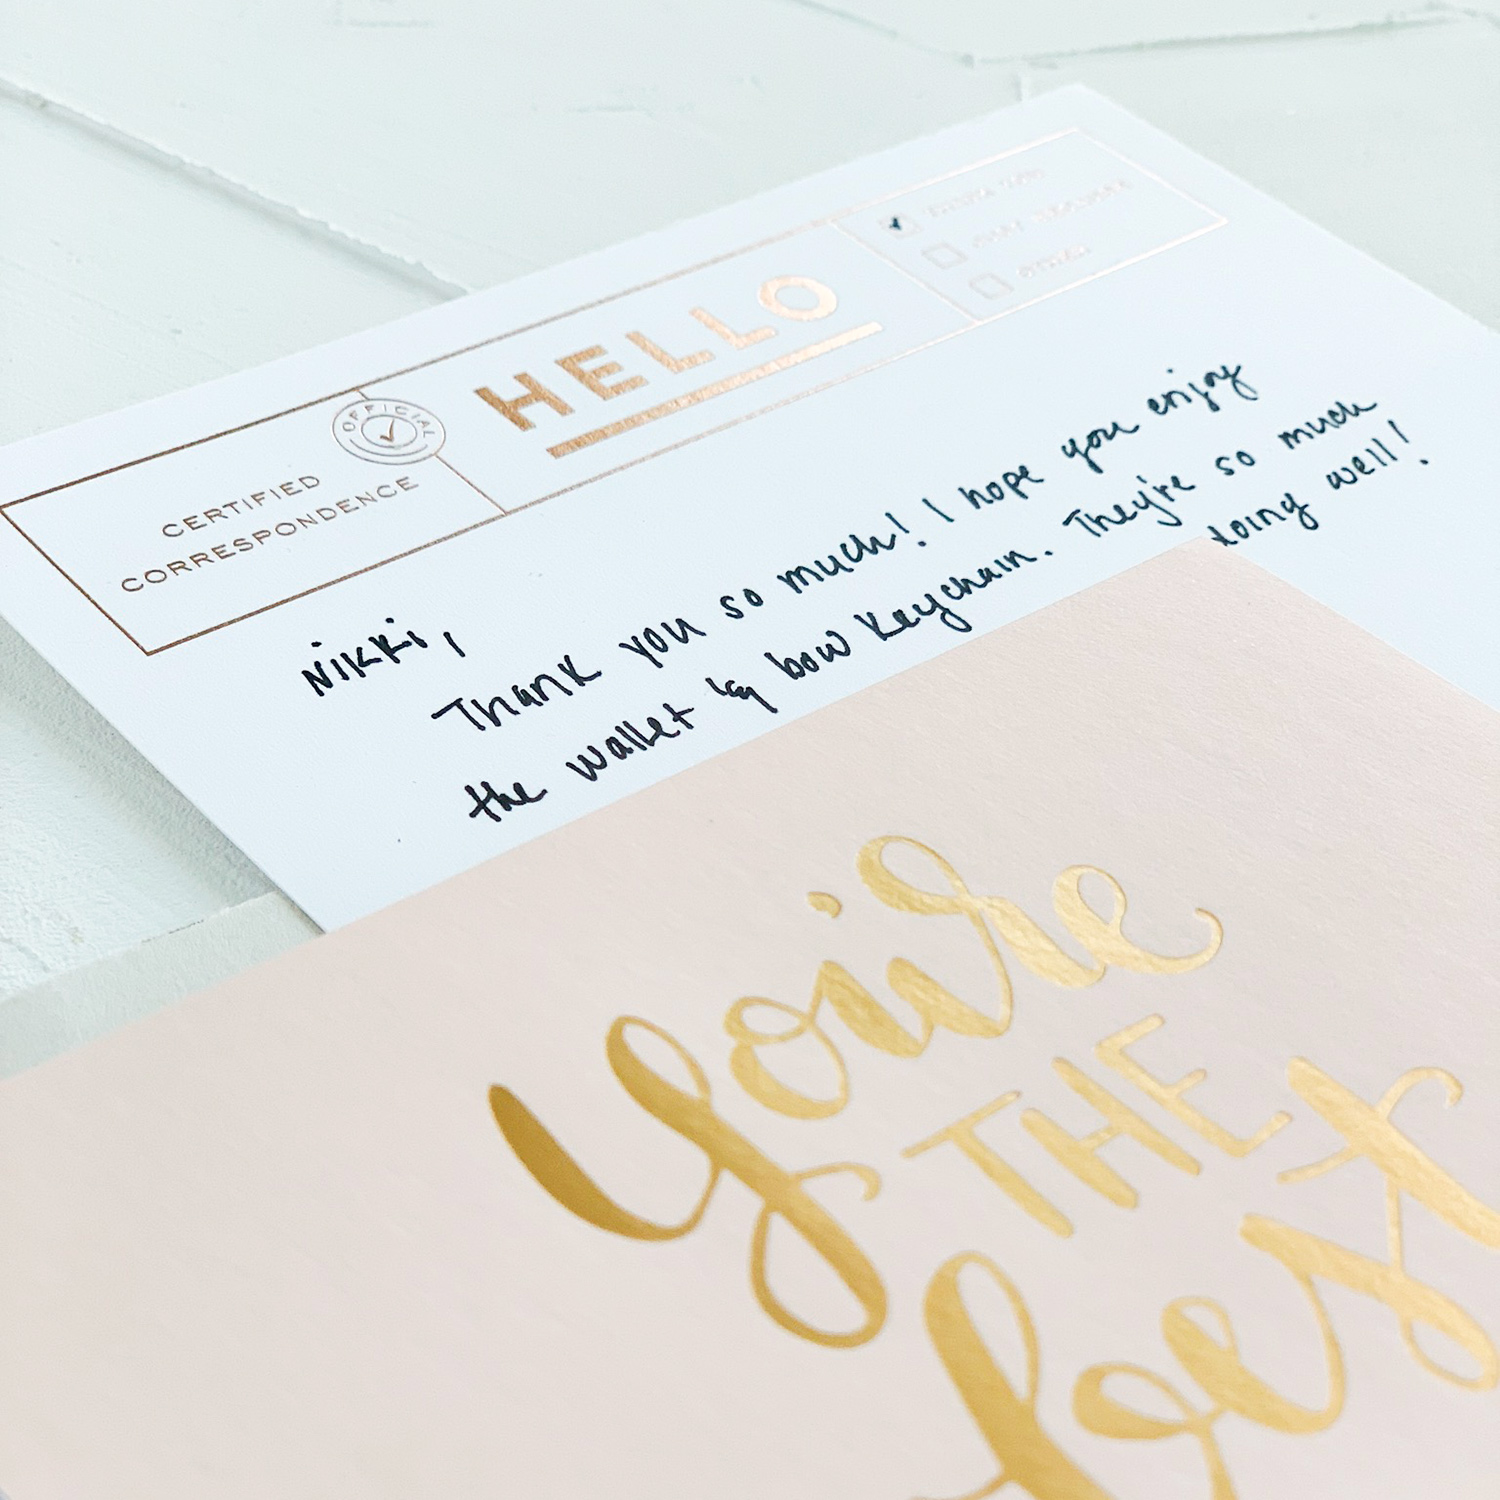 Paper on My Desk, a new mini series by Akula Kreative | Gold foil-stamped stationery, gray envelope with white wax seal, black sticker, rose gold foil-stamped stationery card, vintage stamp in gold and blush